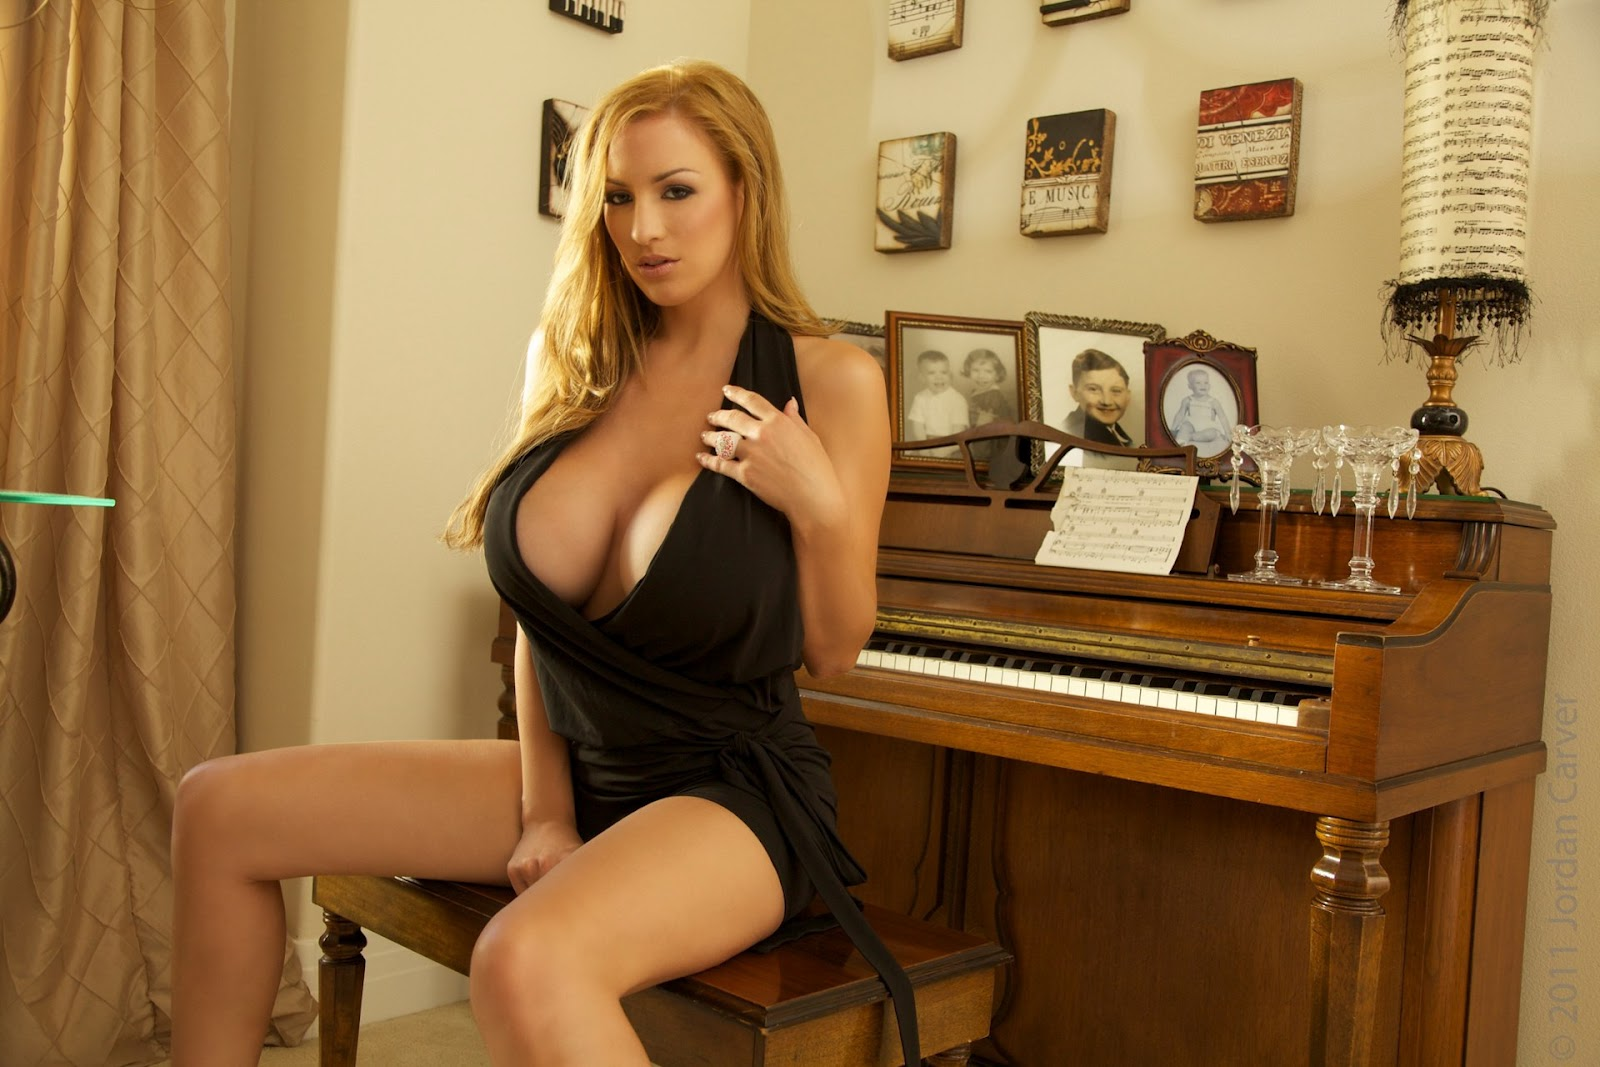 Sexy Jordan Carver in Symphony HQ Photo Shoot torrent details ...